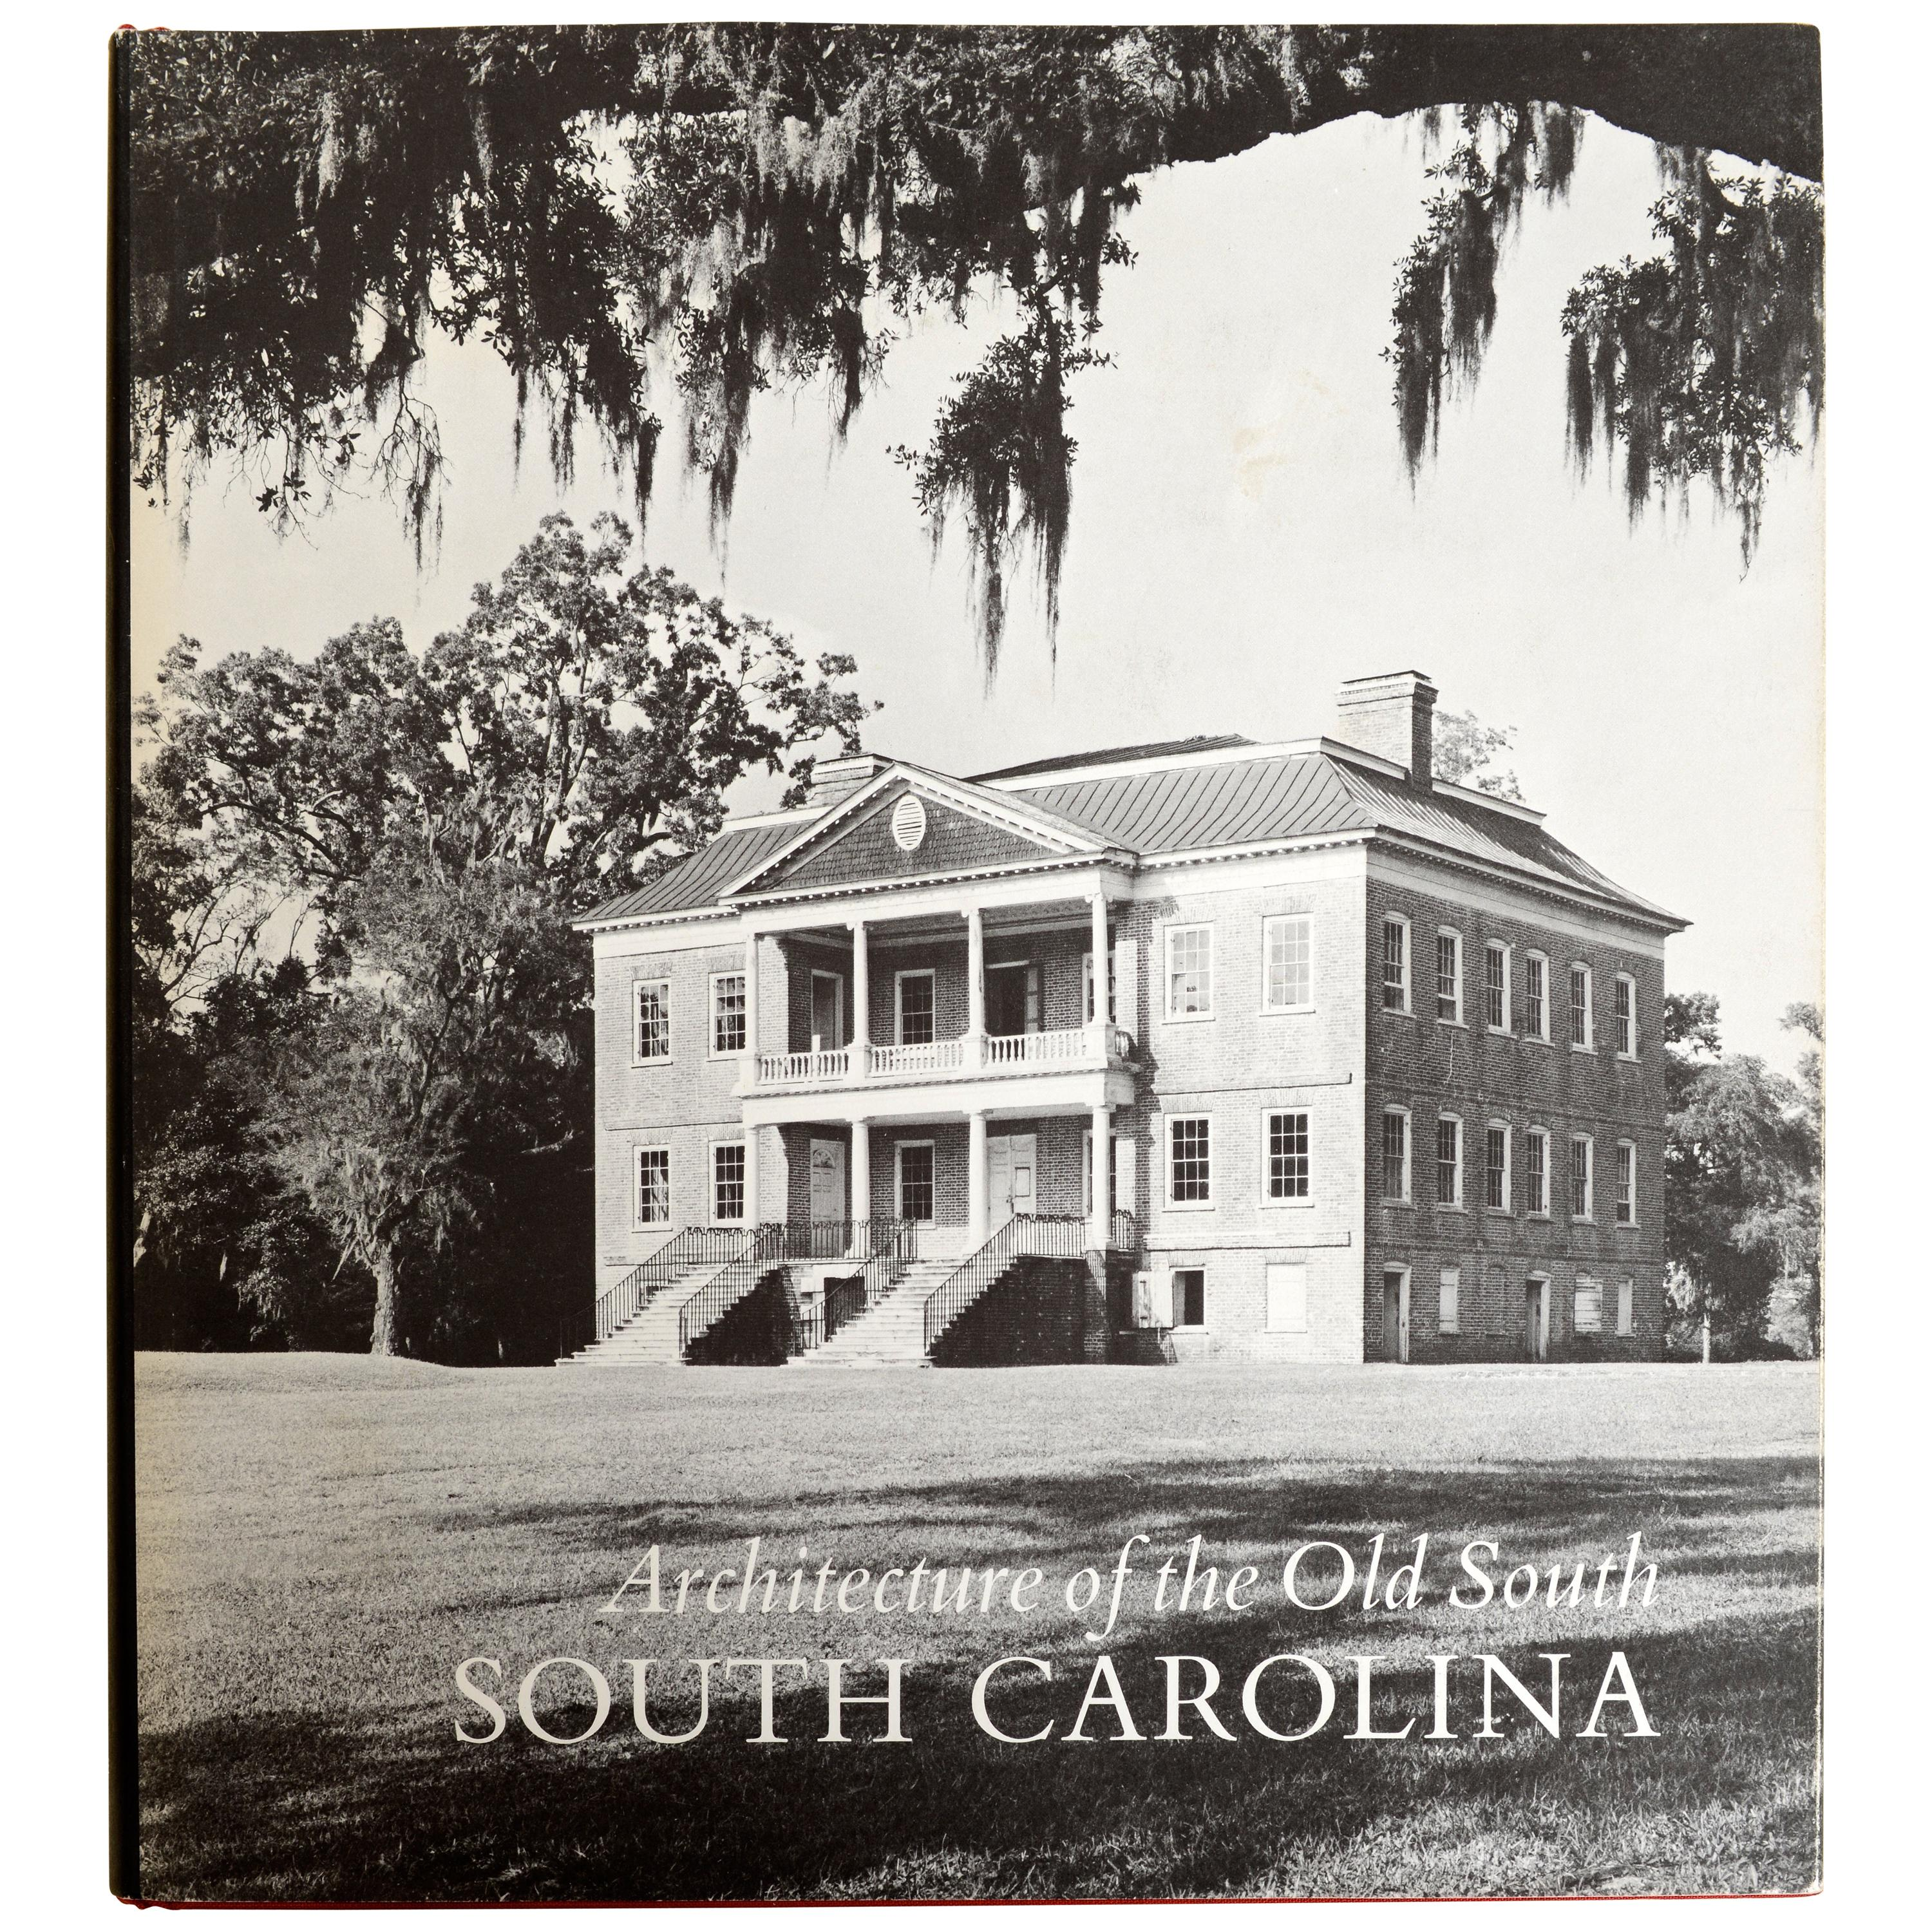 Architecture of the Old South South Carolina by Mills Lane, 1st Ed